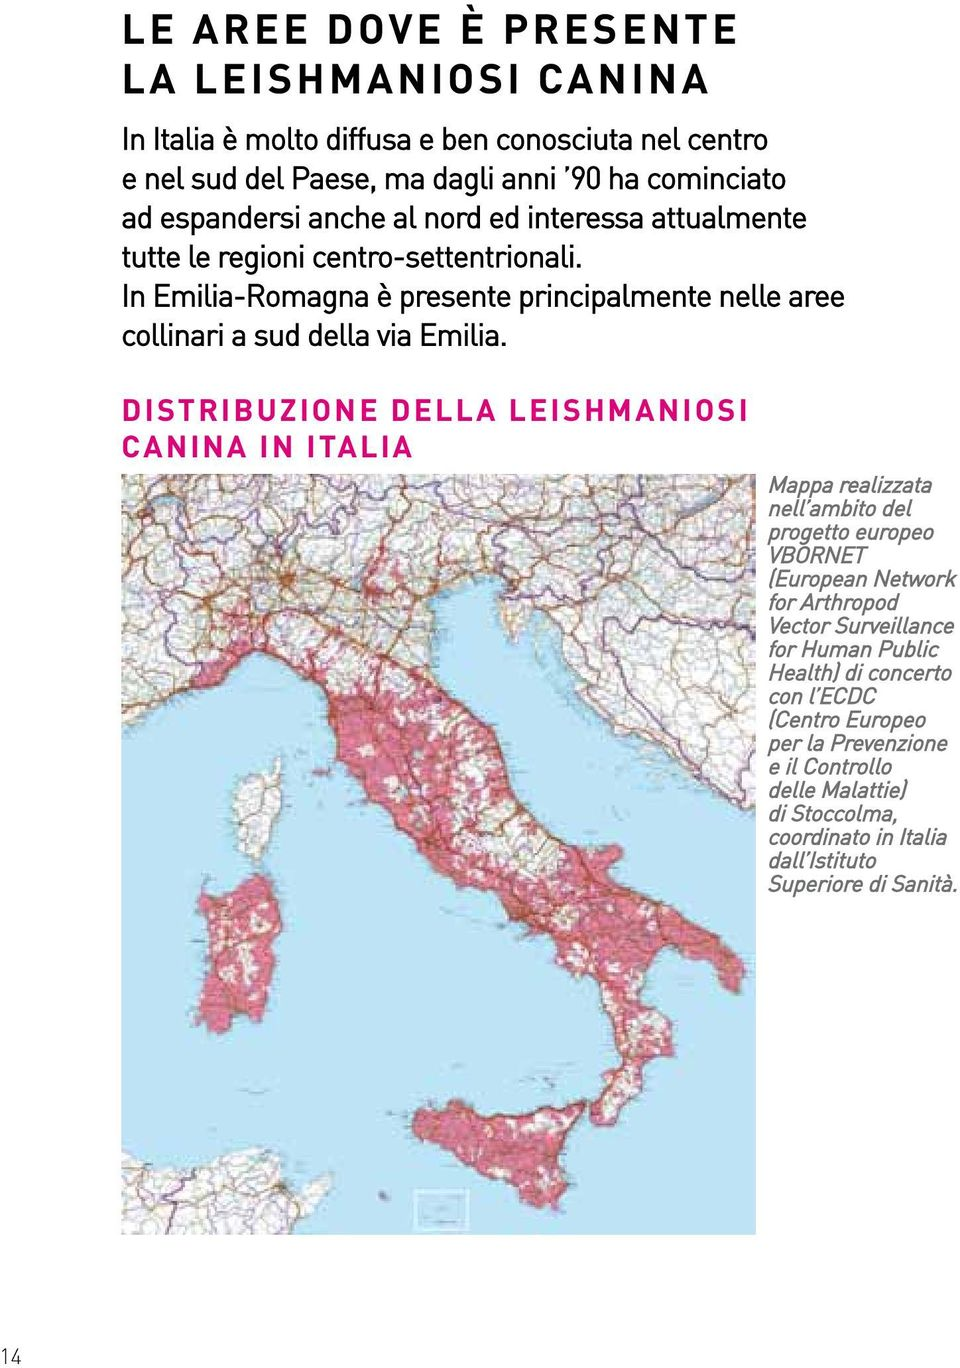 Distribuzione della leishmaniosi canina in italia Mappa realizzata nell ambito del progetto europeo VBORNET (European Network for Arthropod Vector Surveillance for Human